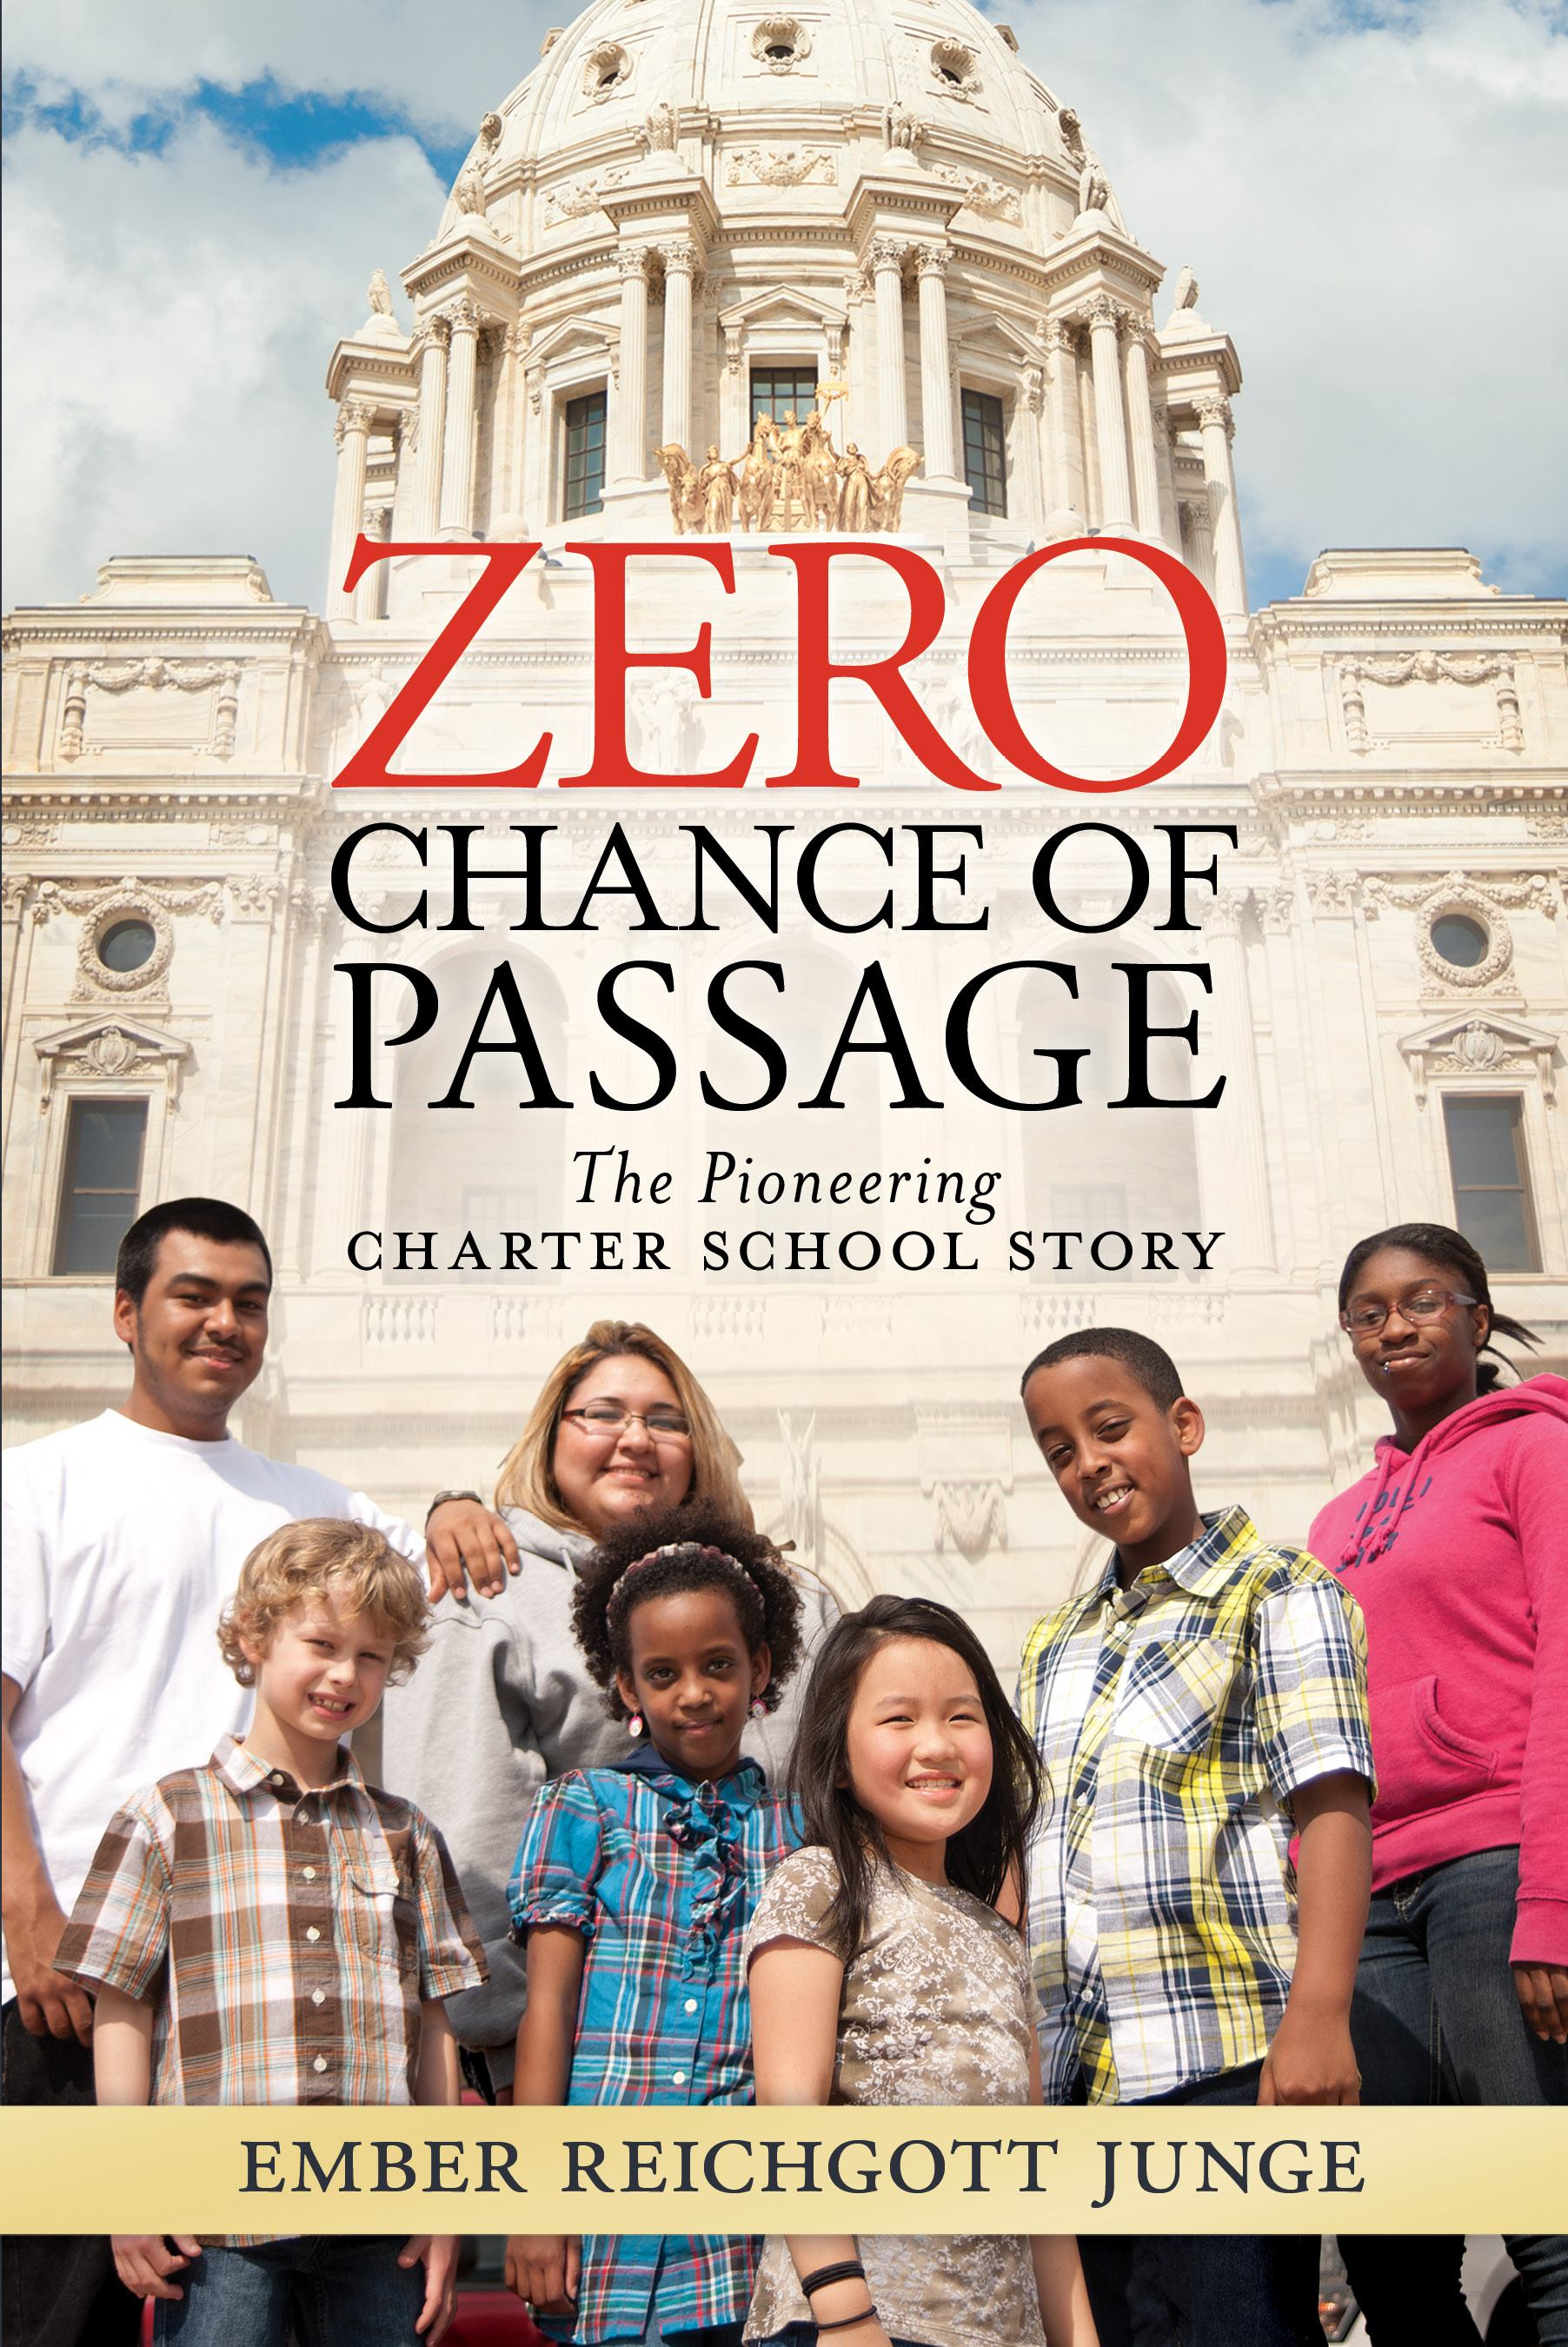 Zero Chance of Passage:  The Pioneering Charter School Story